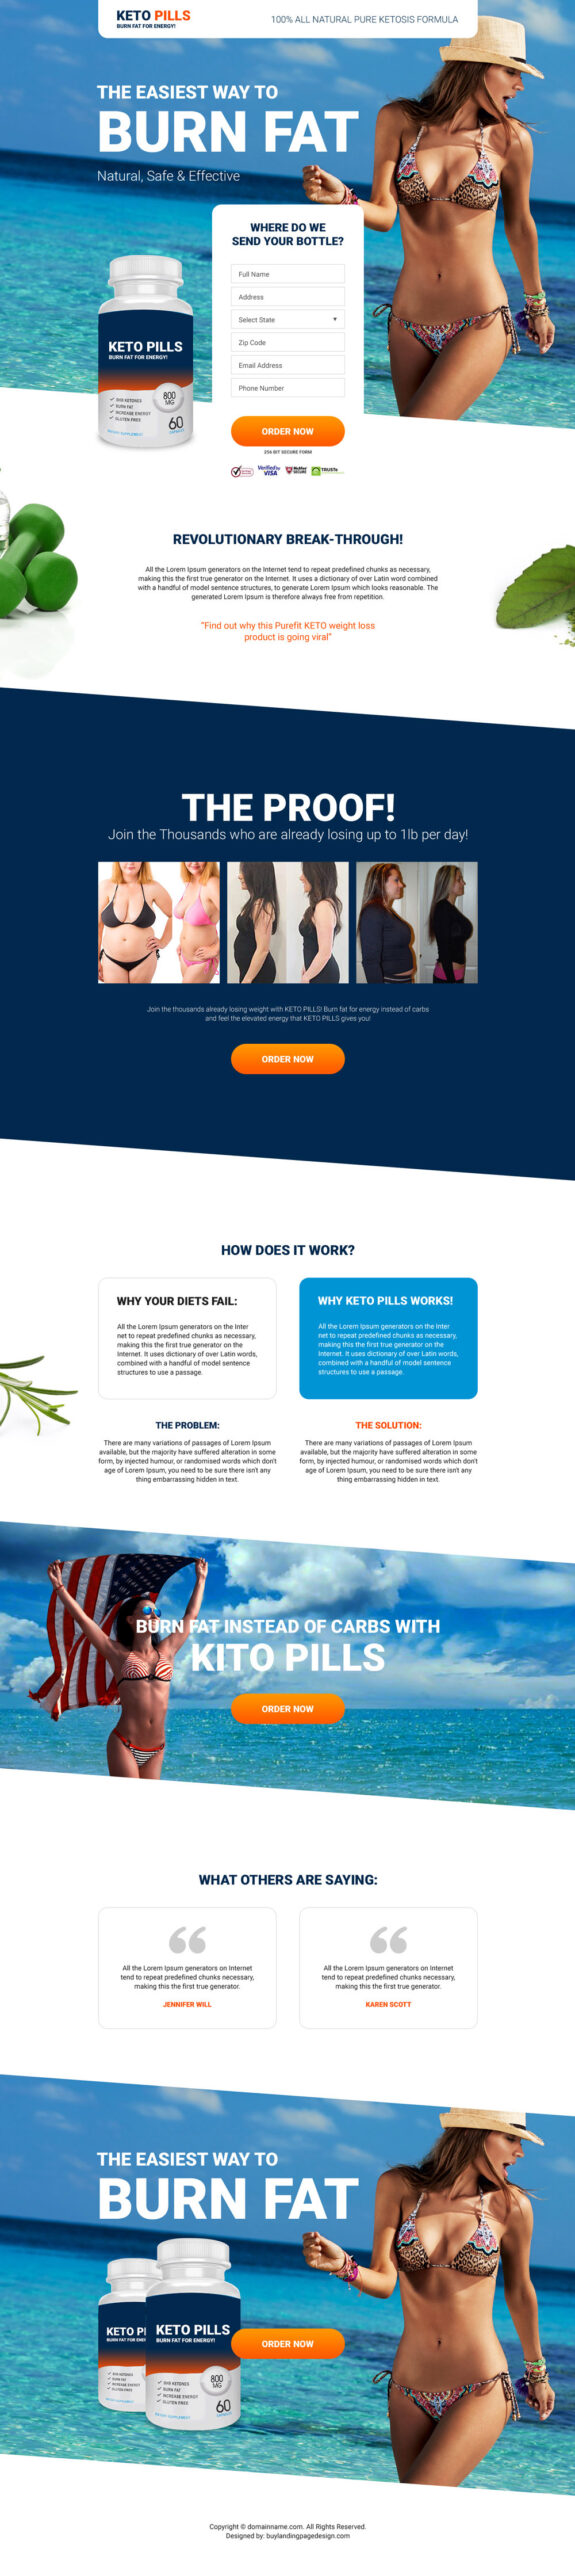 keto pills weight loss landing page